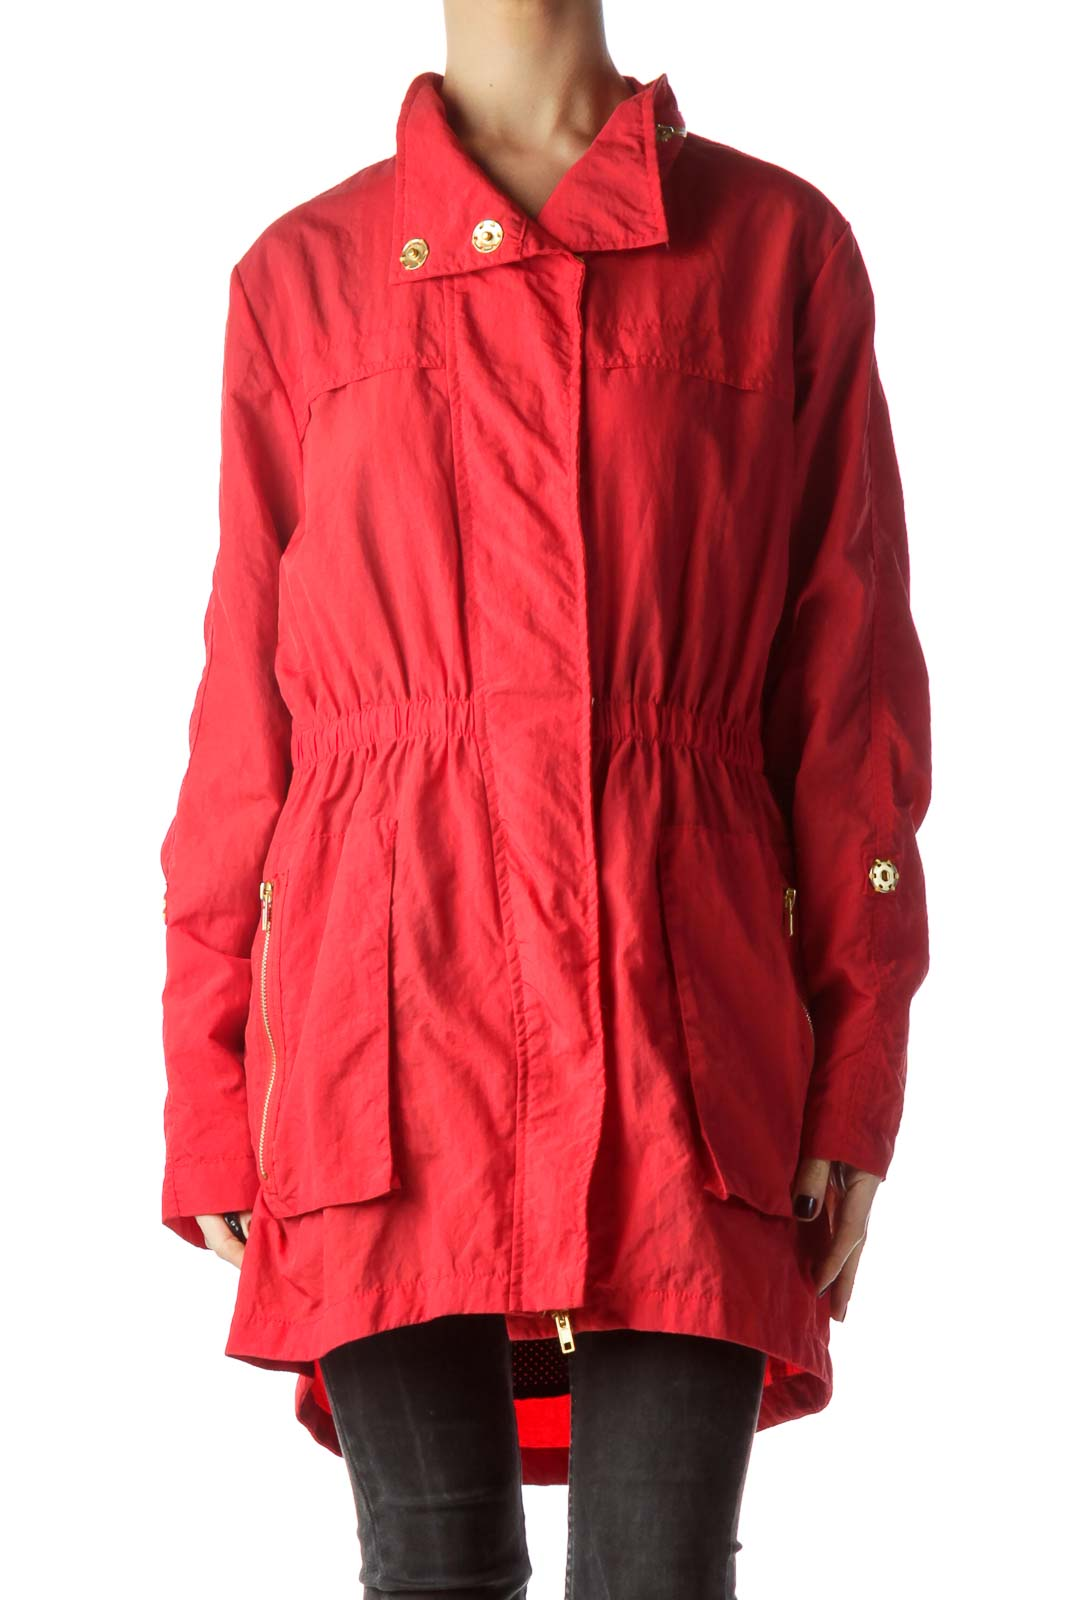 Red Gold Zippers and Buttons Long Jacket Front